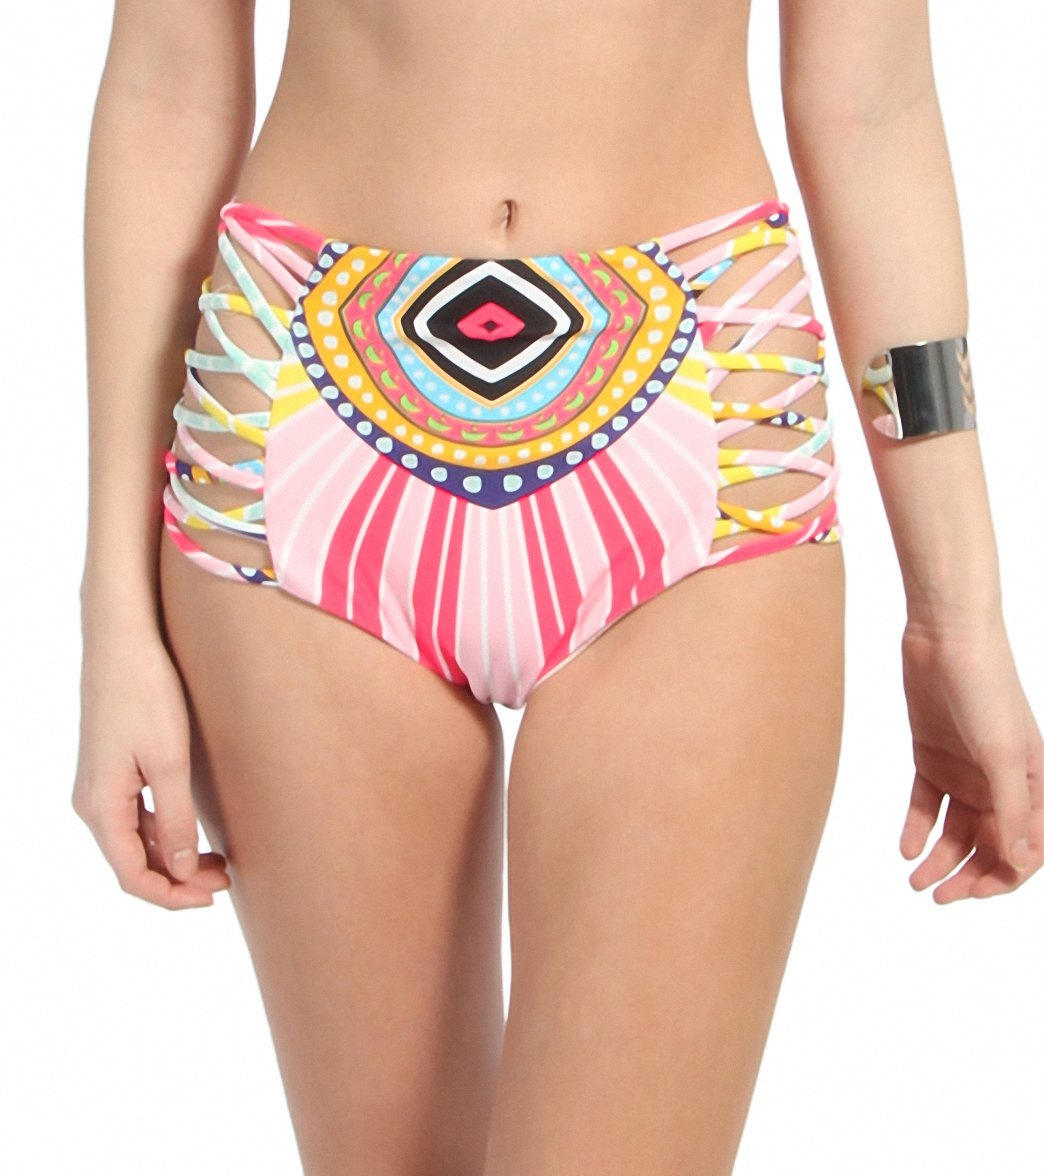 af686df82e7 Mara Hoffman Rays Lattice High Waisted Bikini Bottom at SwimOutlet ...